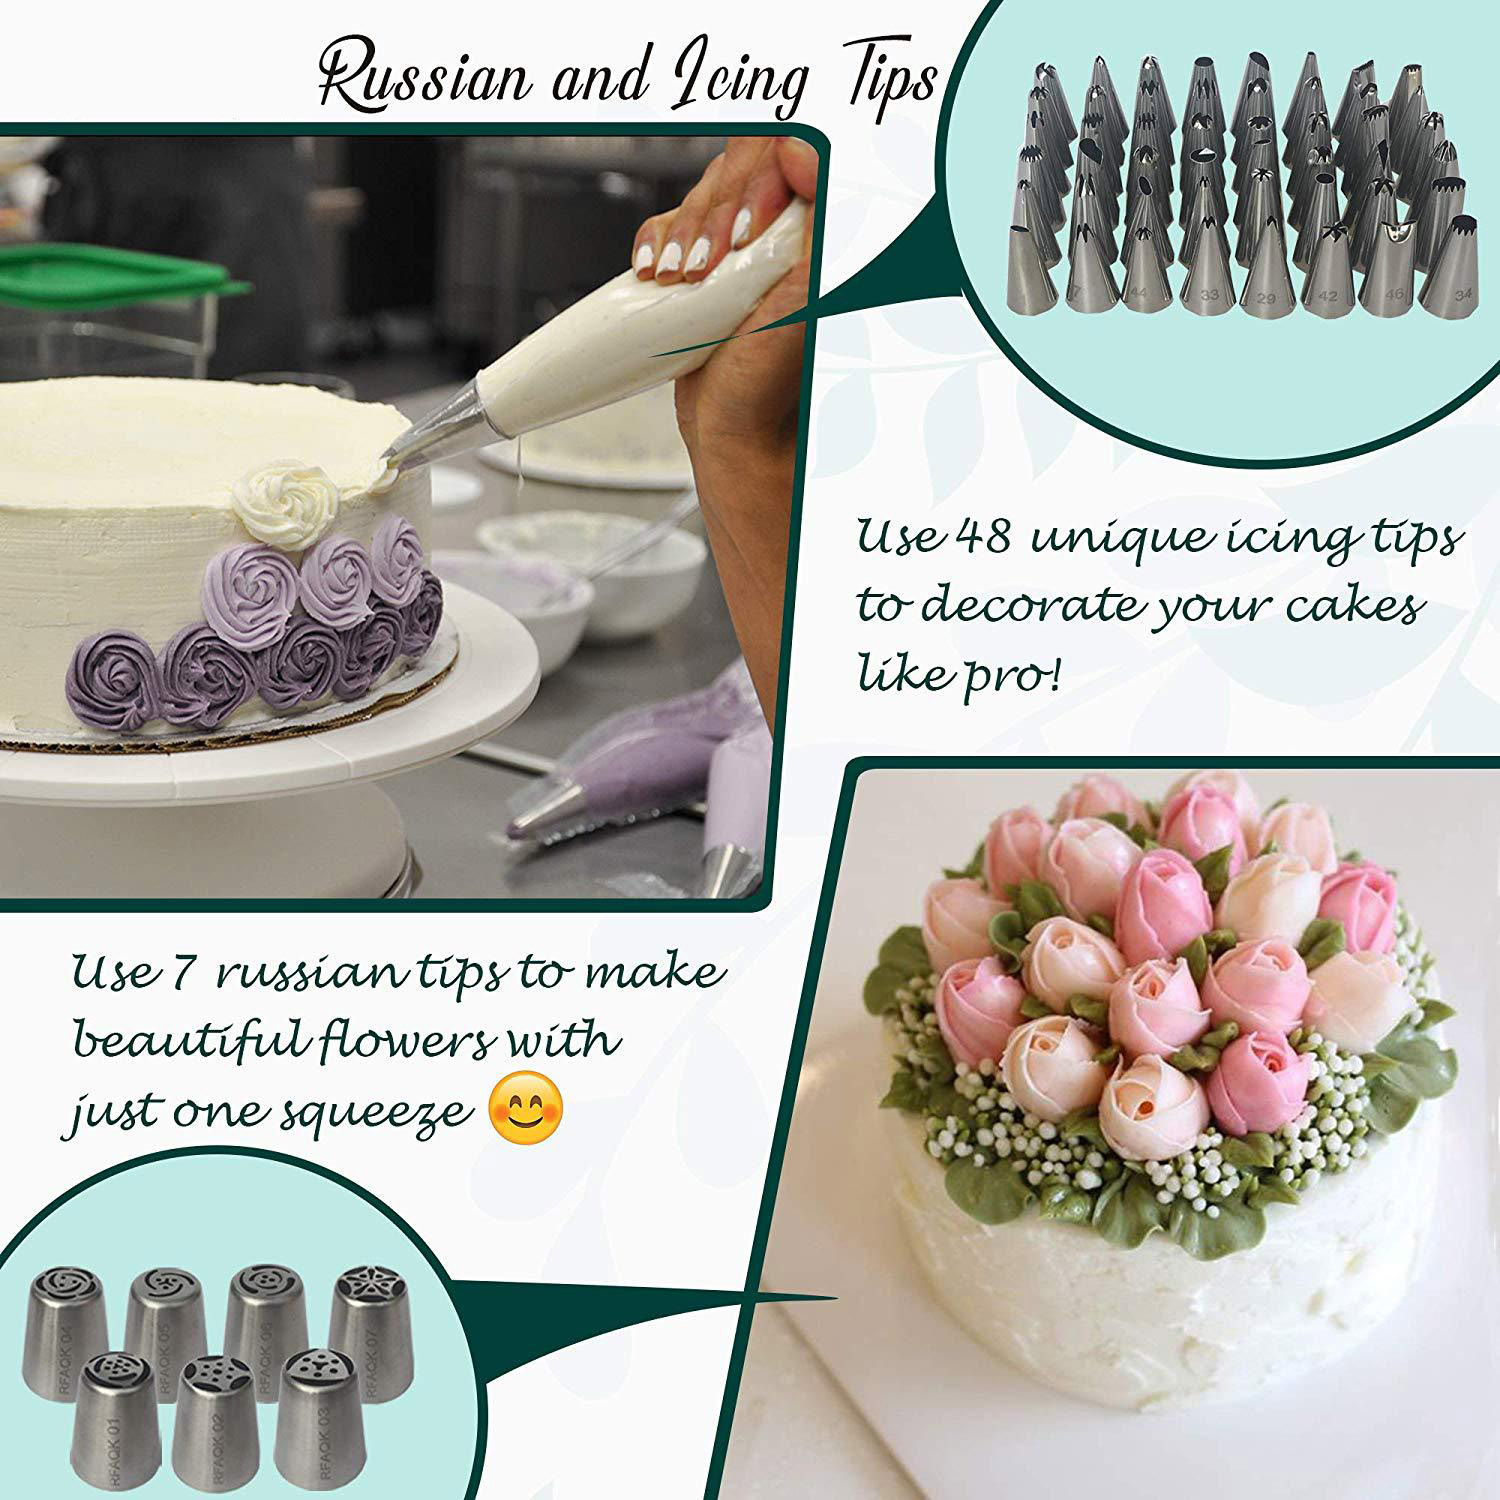 Russian Piping Tips Set 48 Pcs Cake Cupcake Decorating Supplies Kit Flower Frosting Tips 12 Icing Nozzles-2 Leaf Tips-3 Couplers-28 Pastry Baking Bags-User Guide LFVIK